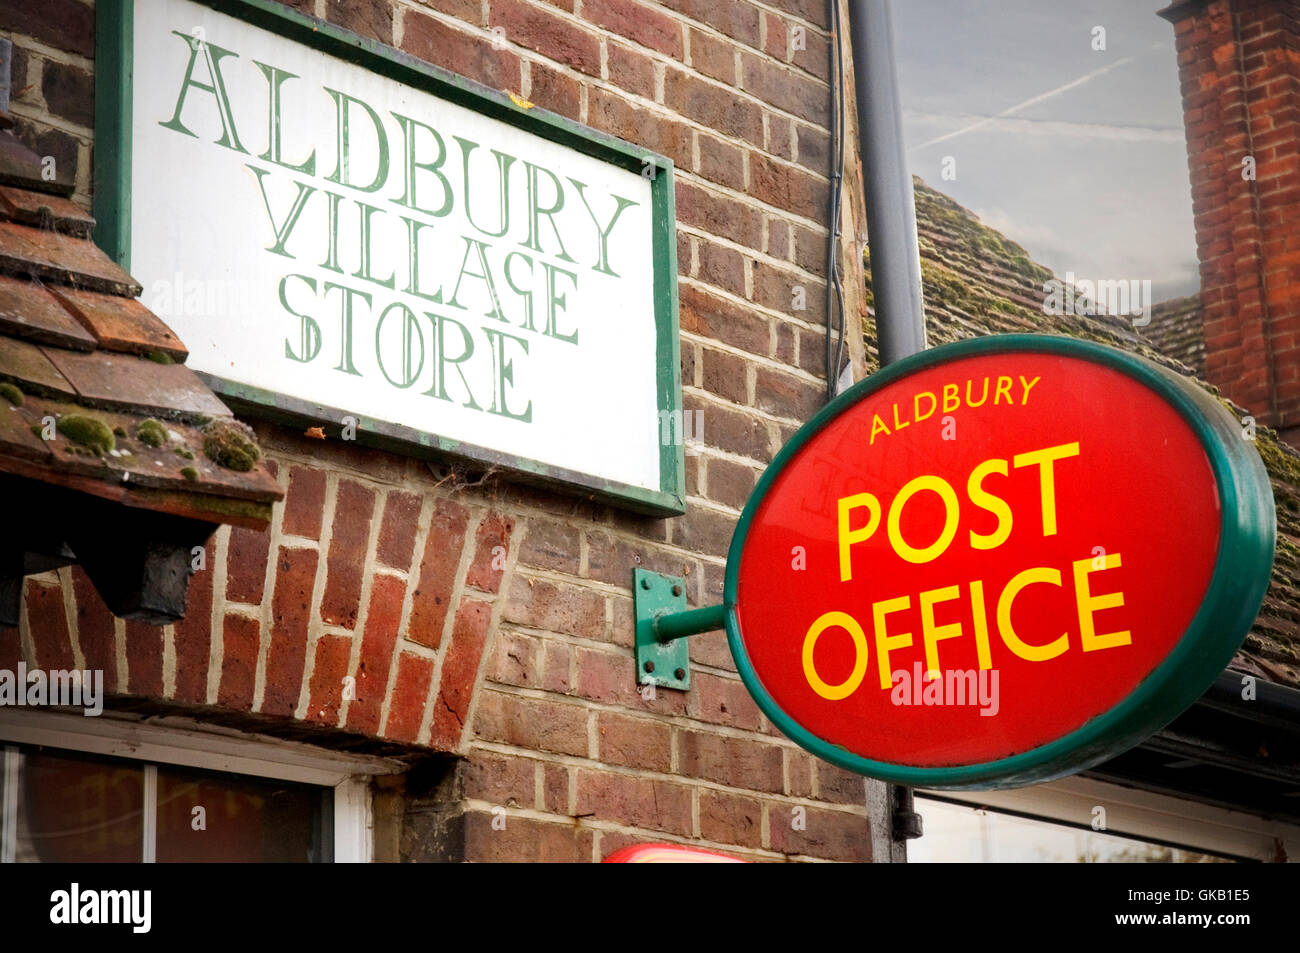 Rural post office in the village Aldbury,  near Tring, Hertfordshire - Stock Image